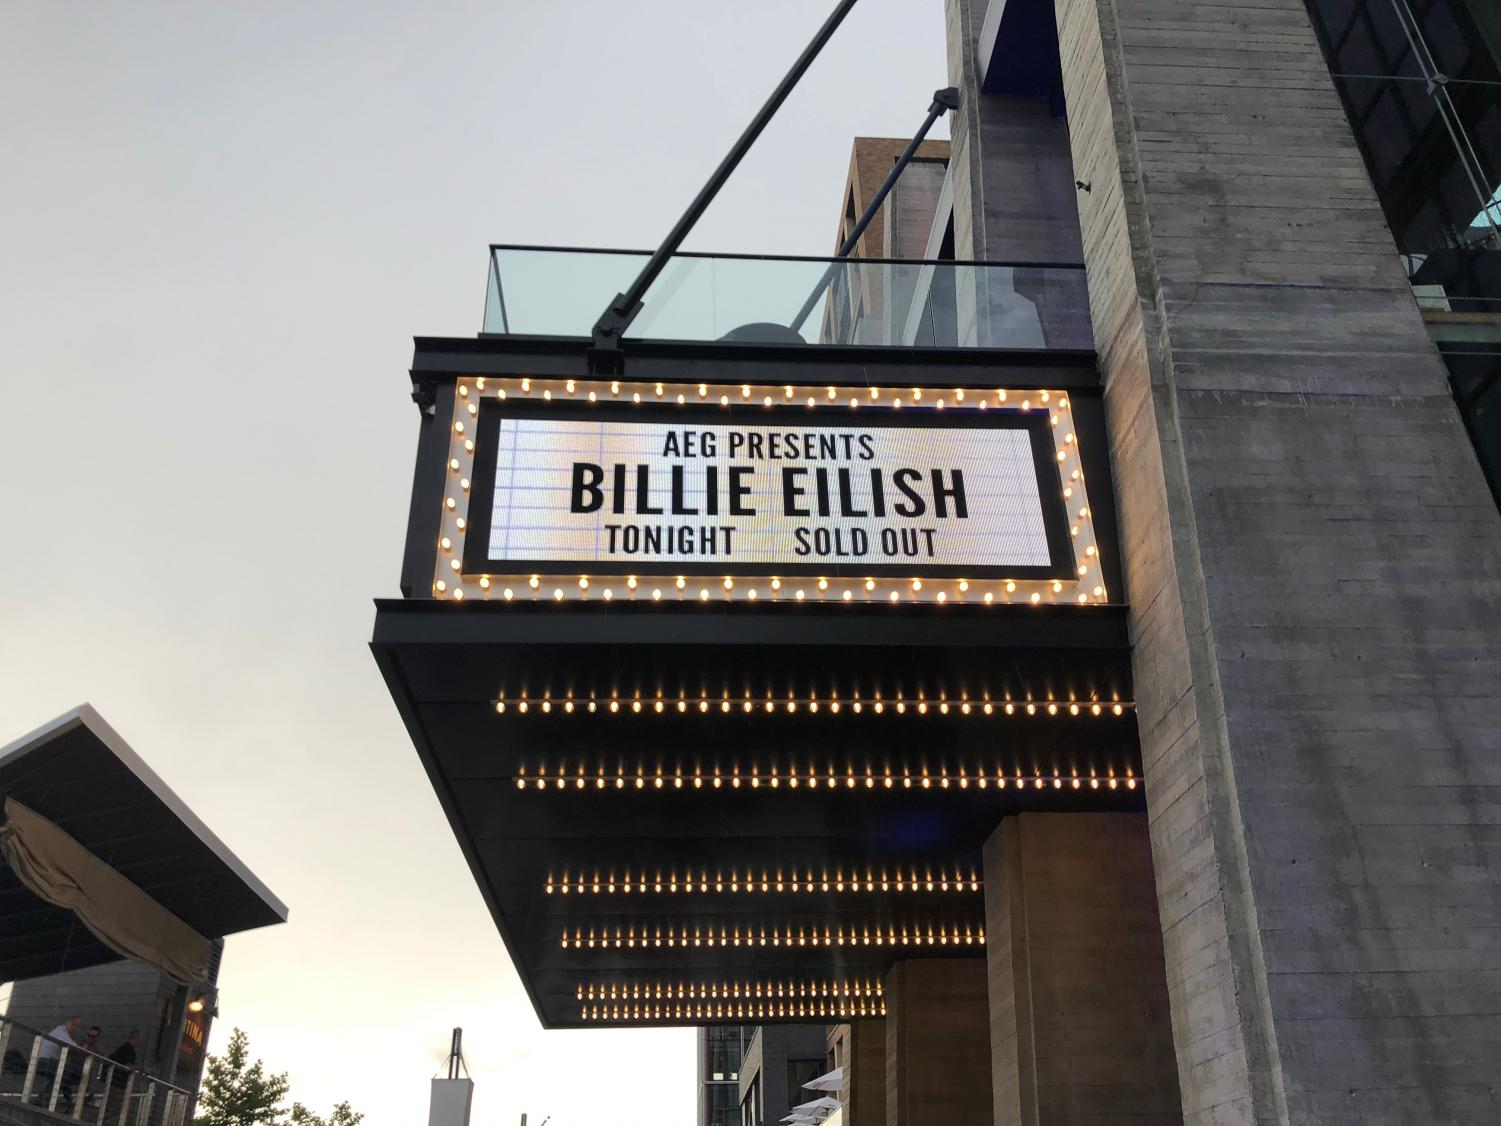 "Billie Eilish, writer and singer of ""bad guy"", plays a concert in the Anthem venue in Washington D.C. While her tour passed through the DMV in June, many Severna Park residents attended the concert. ""Billie was such an amazing performer, and her songs sounded even better live, in front of a sold-out audience,"" senior Maddy Gillin said."